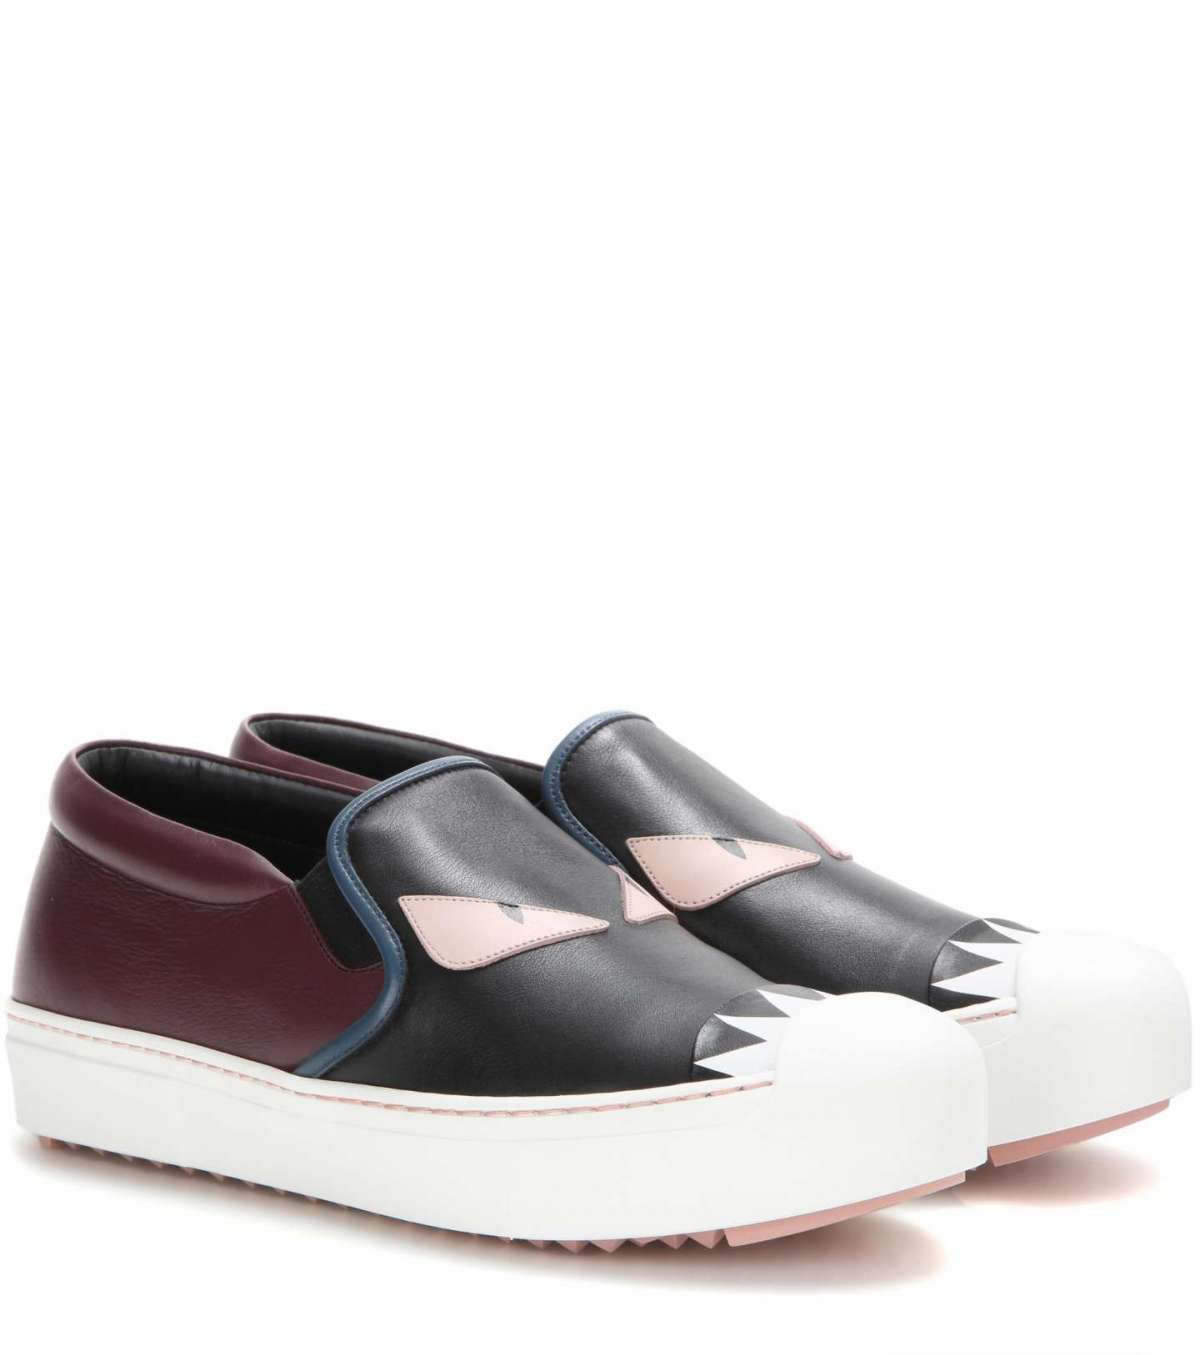 fendi slip on+